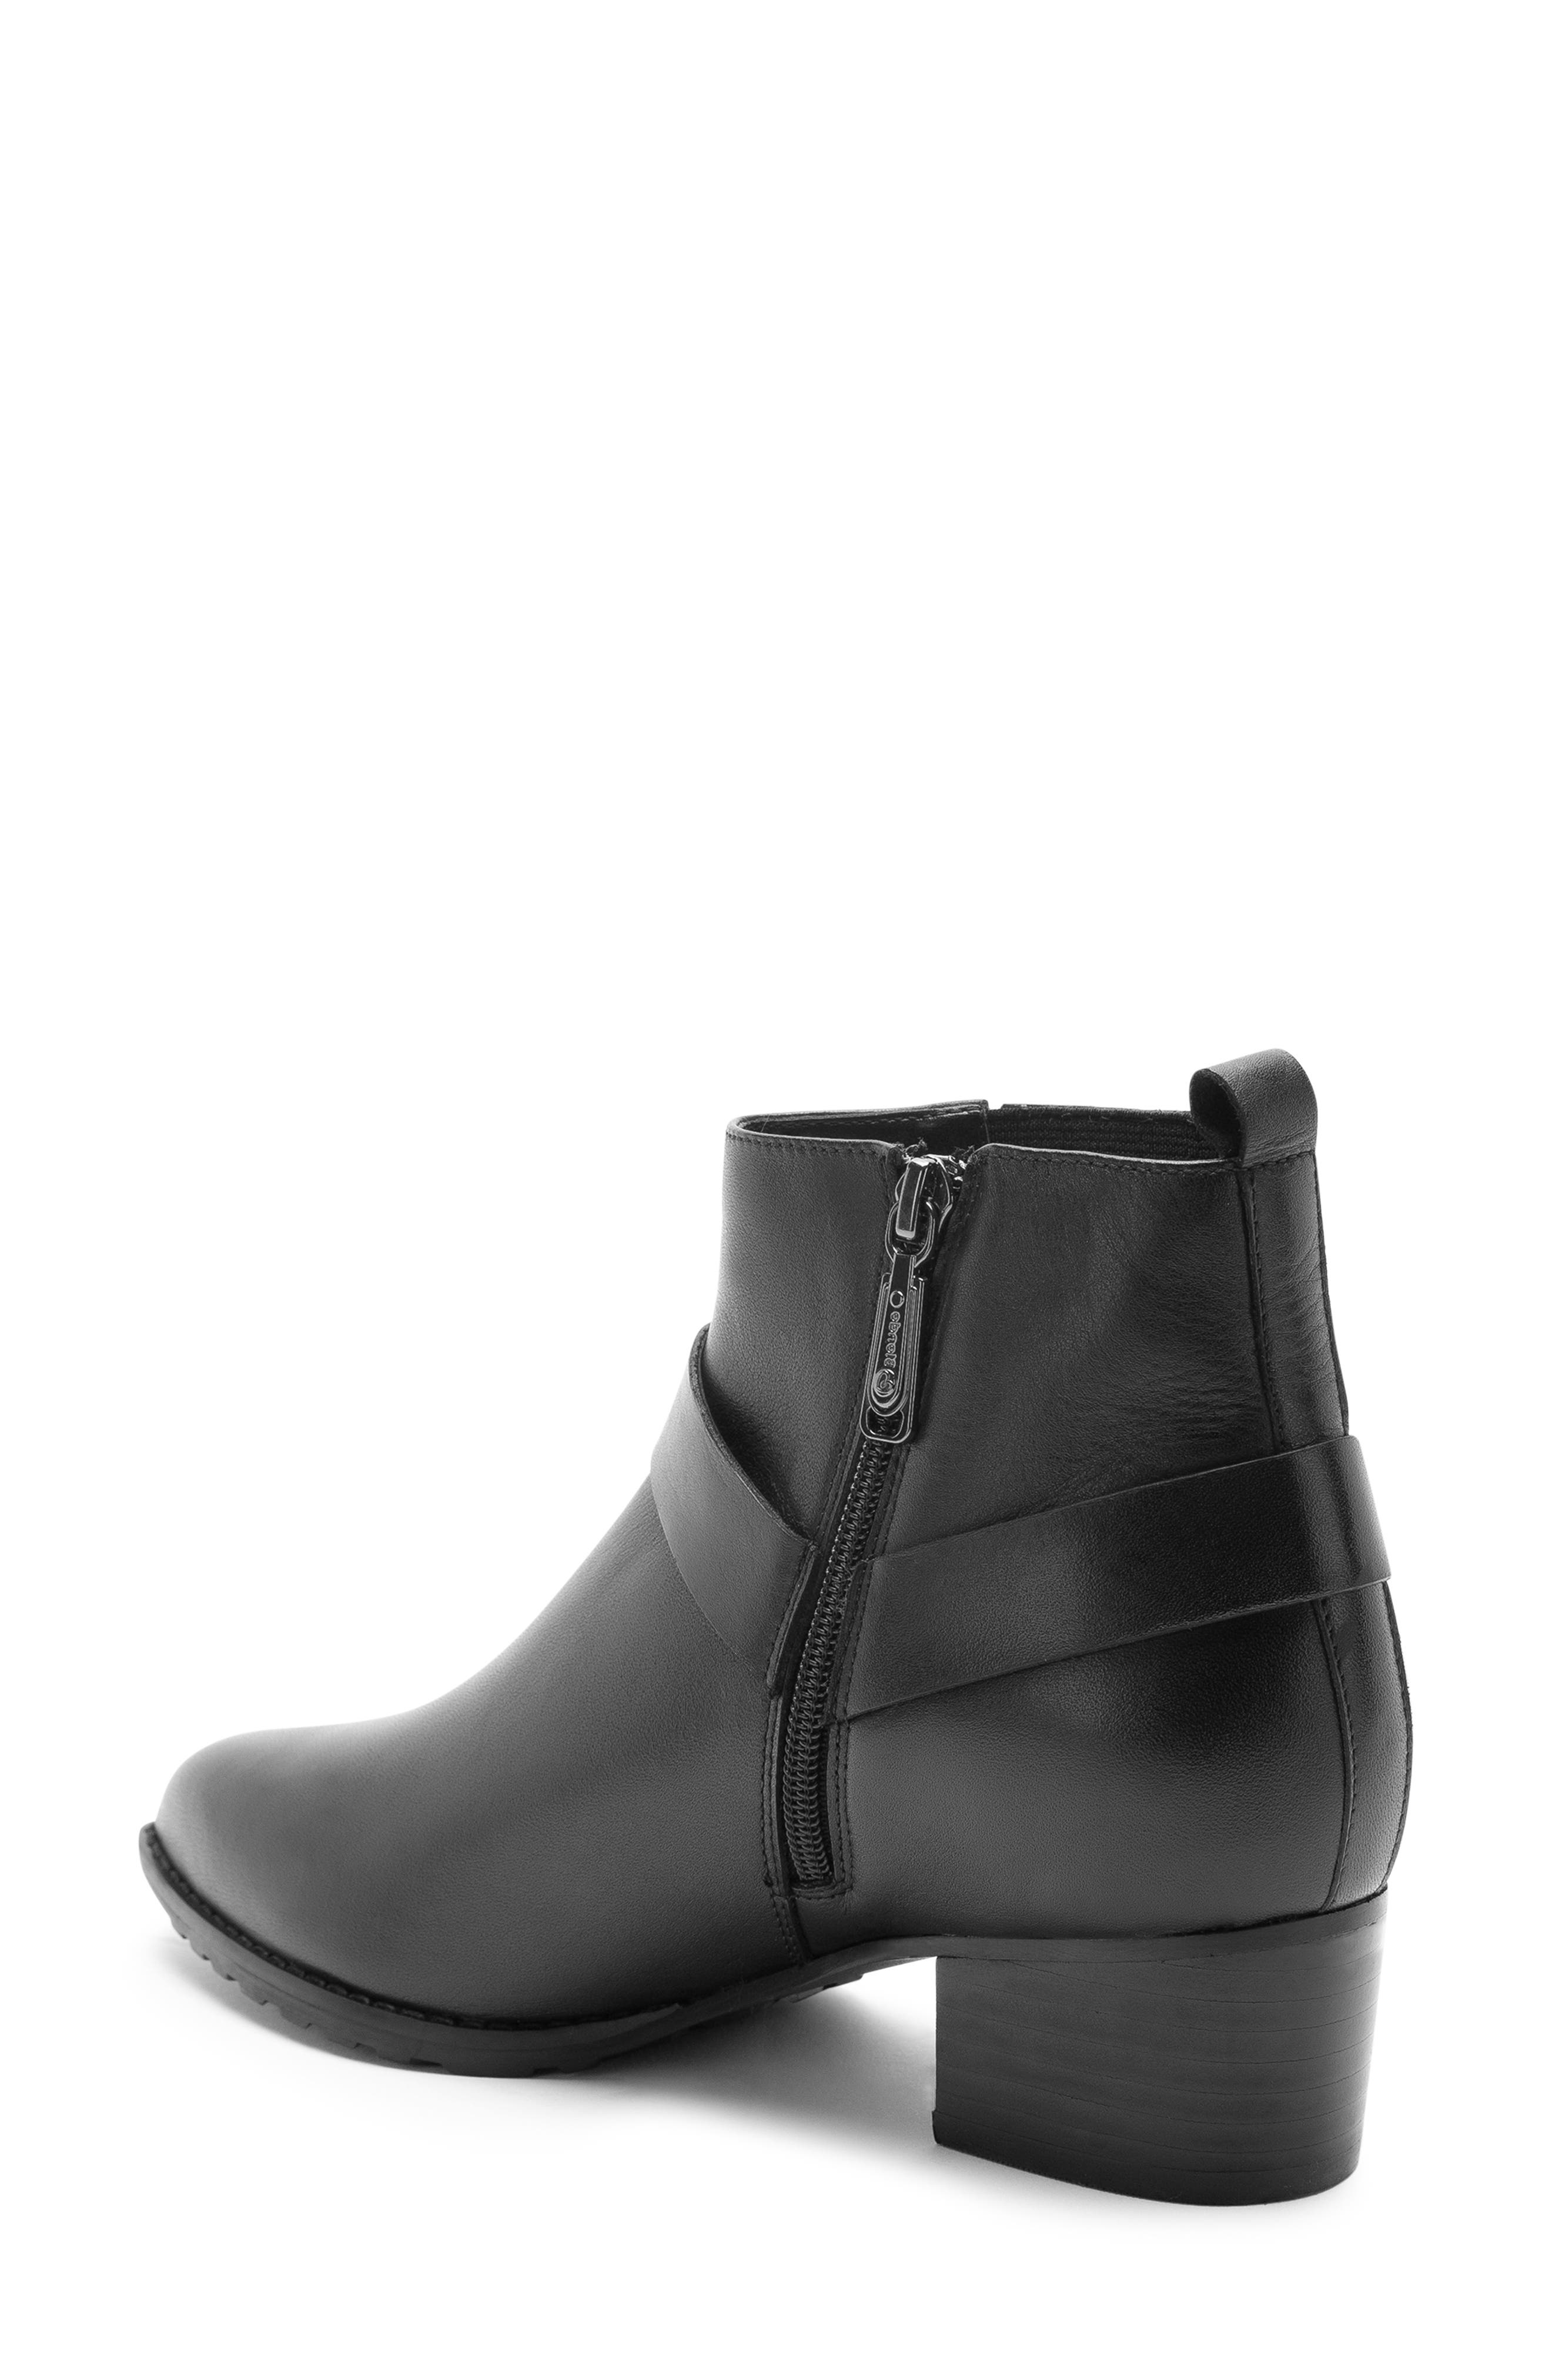 Tasha Waterproof Bootie,                             Alternate thumbnail 2, color,                             BLACK LEATHER